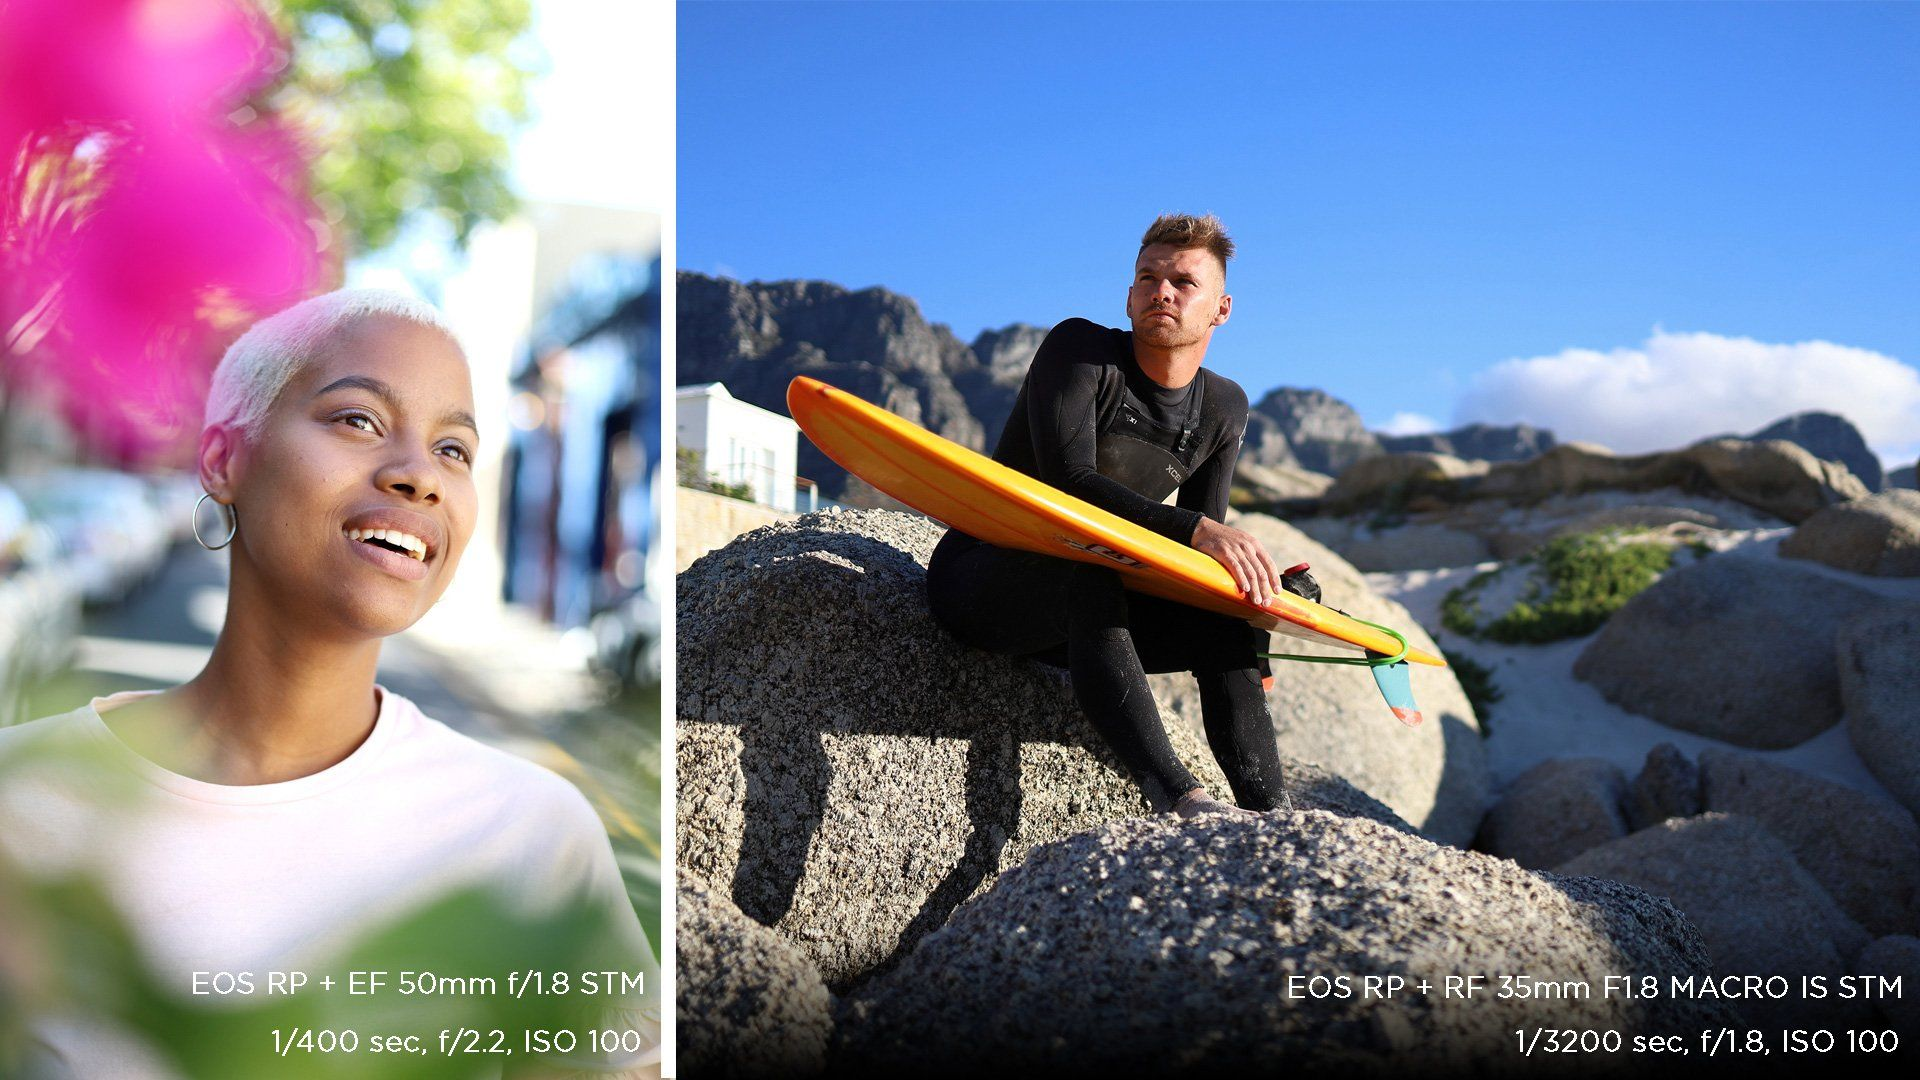 A composite picture: a smiling young woman beside out of focus flowers in one shot; and a surfer sits on some rocks with his surfboard in the other. Photos taken on a Canon EOS RP.